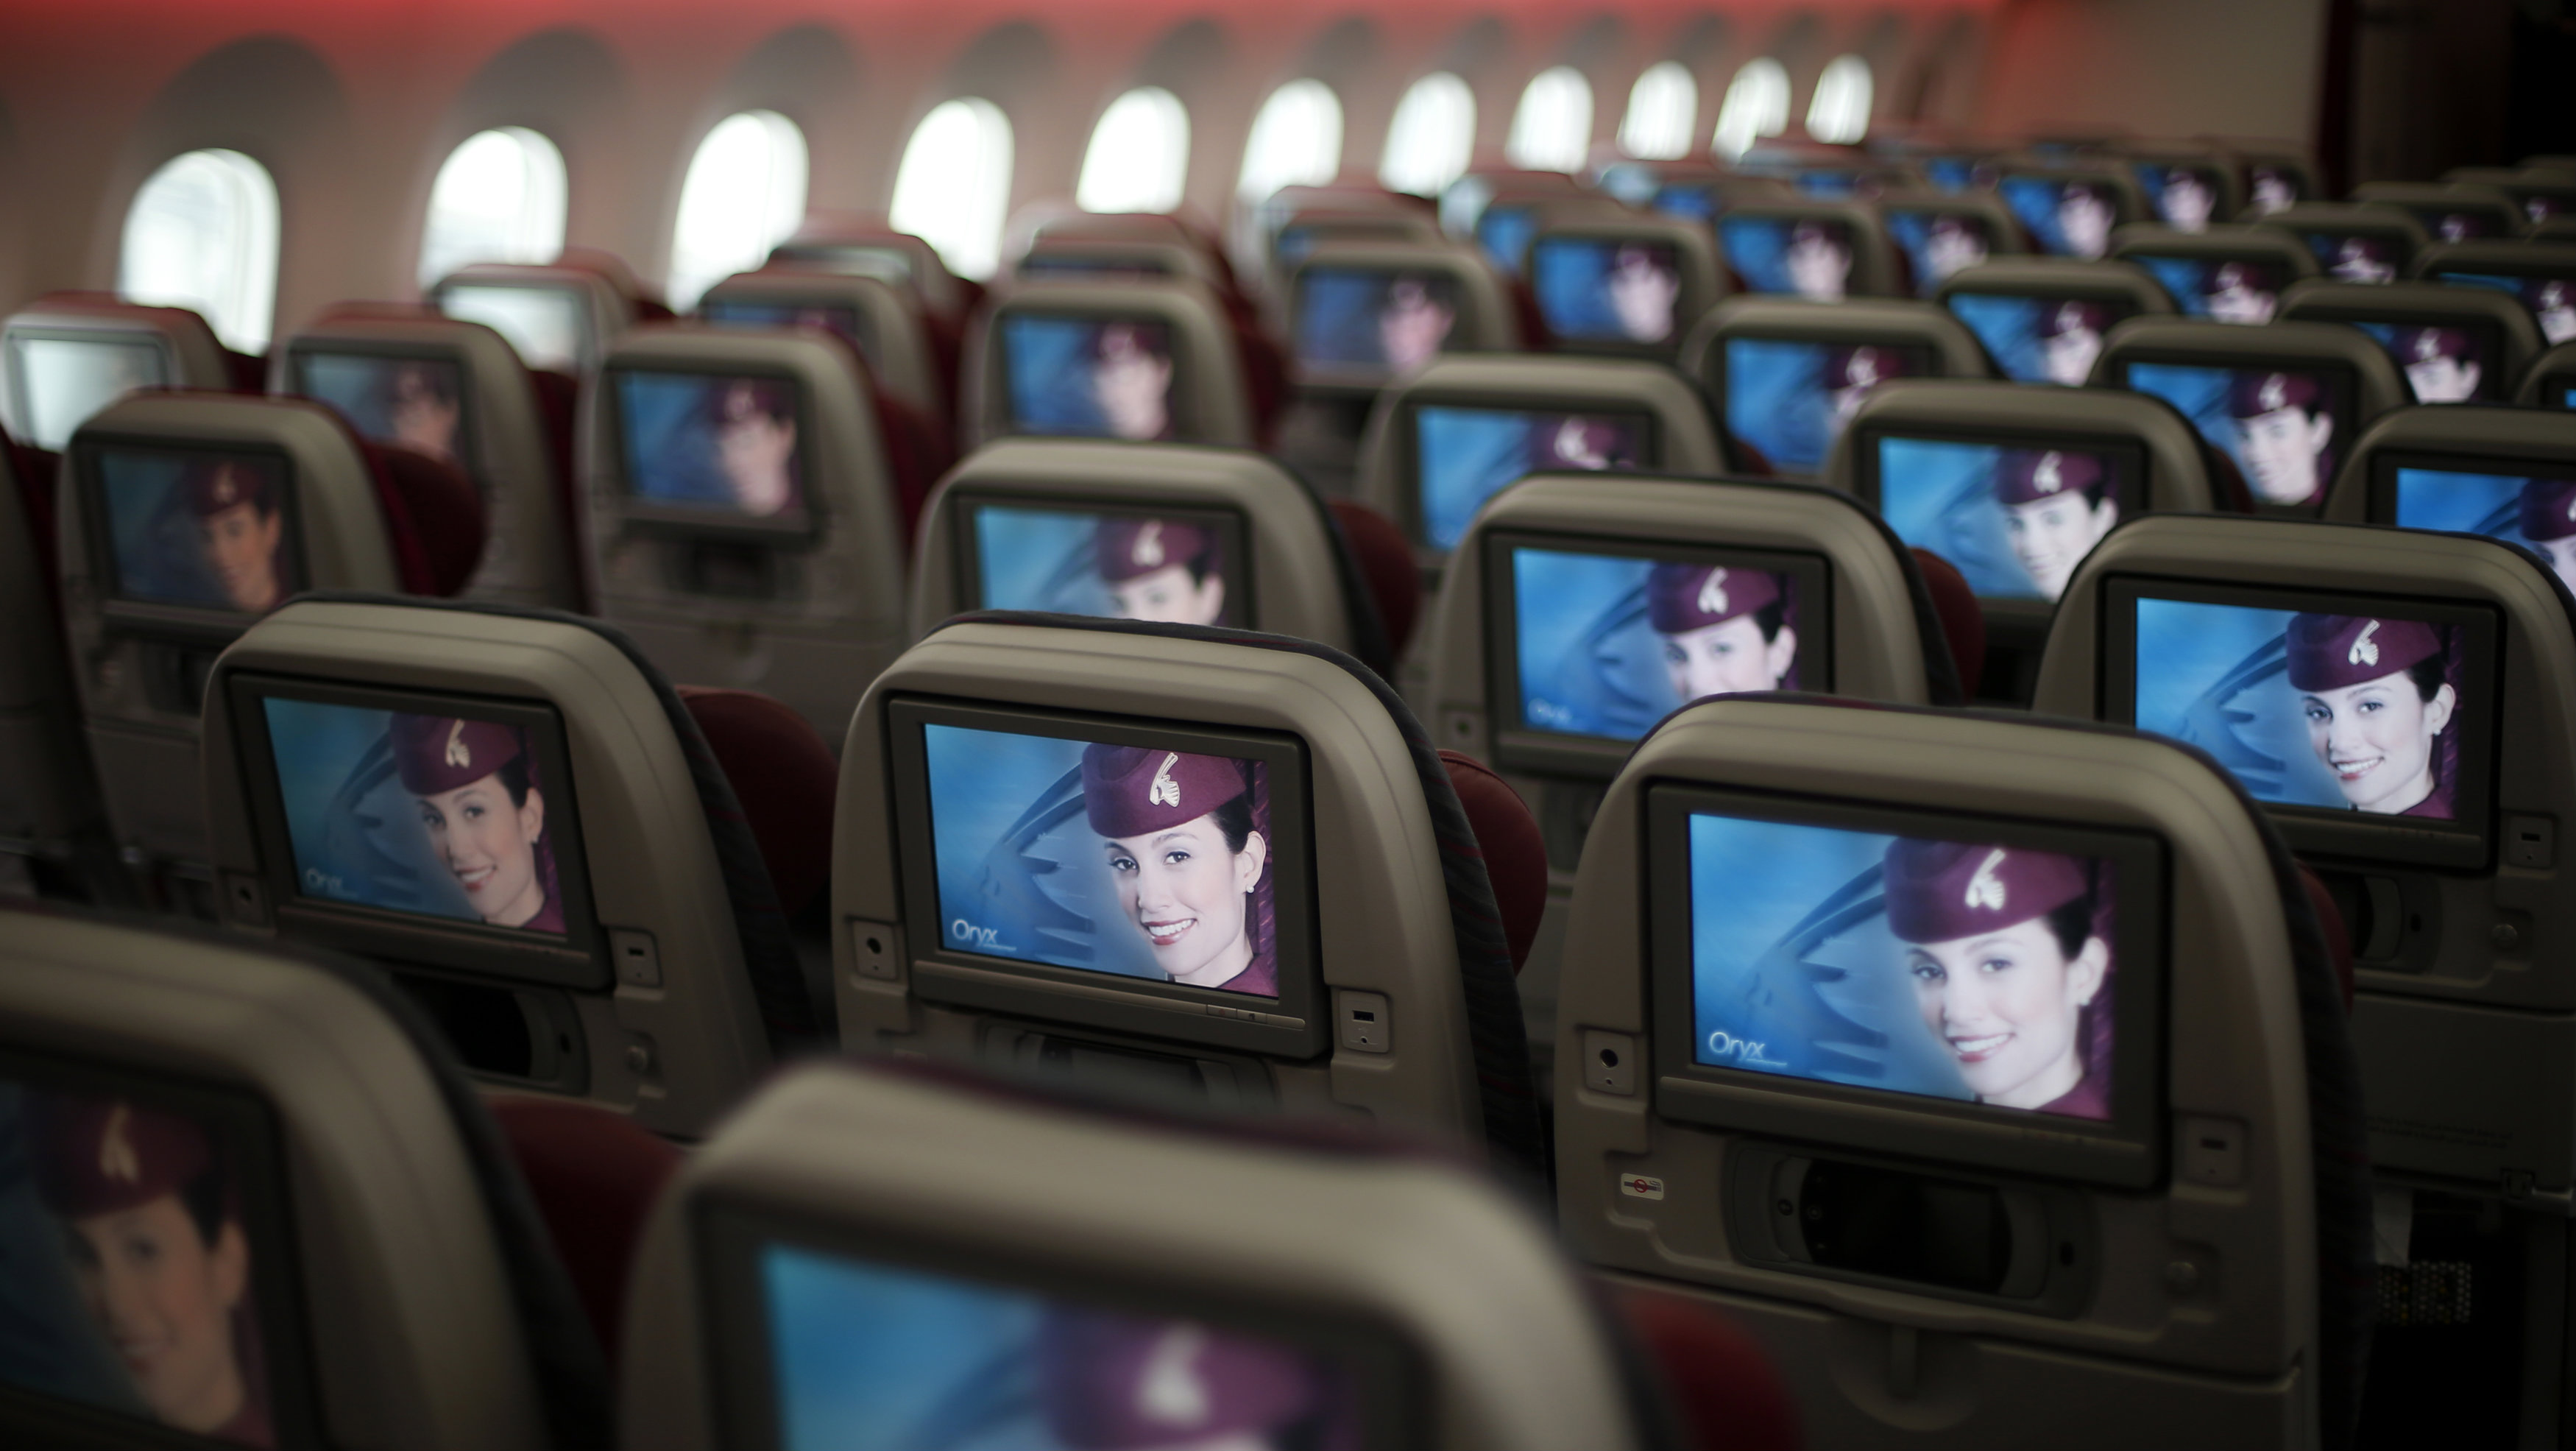 Seats and screens are seen in the economy class cabin of Qatar Airways new Boeing 787 Dreamliner are seen after it arrived on it's inaugural flight to Heathrow Airport, west London December 13, 2012. Qatar Airways is the first airline to operate scheduled Dreamliner flights to and from the UK.